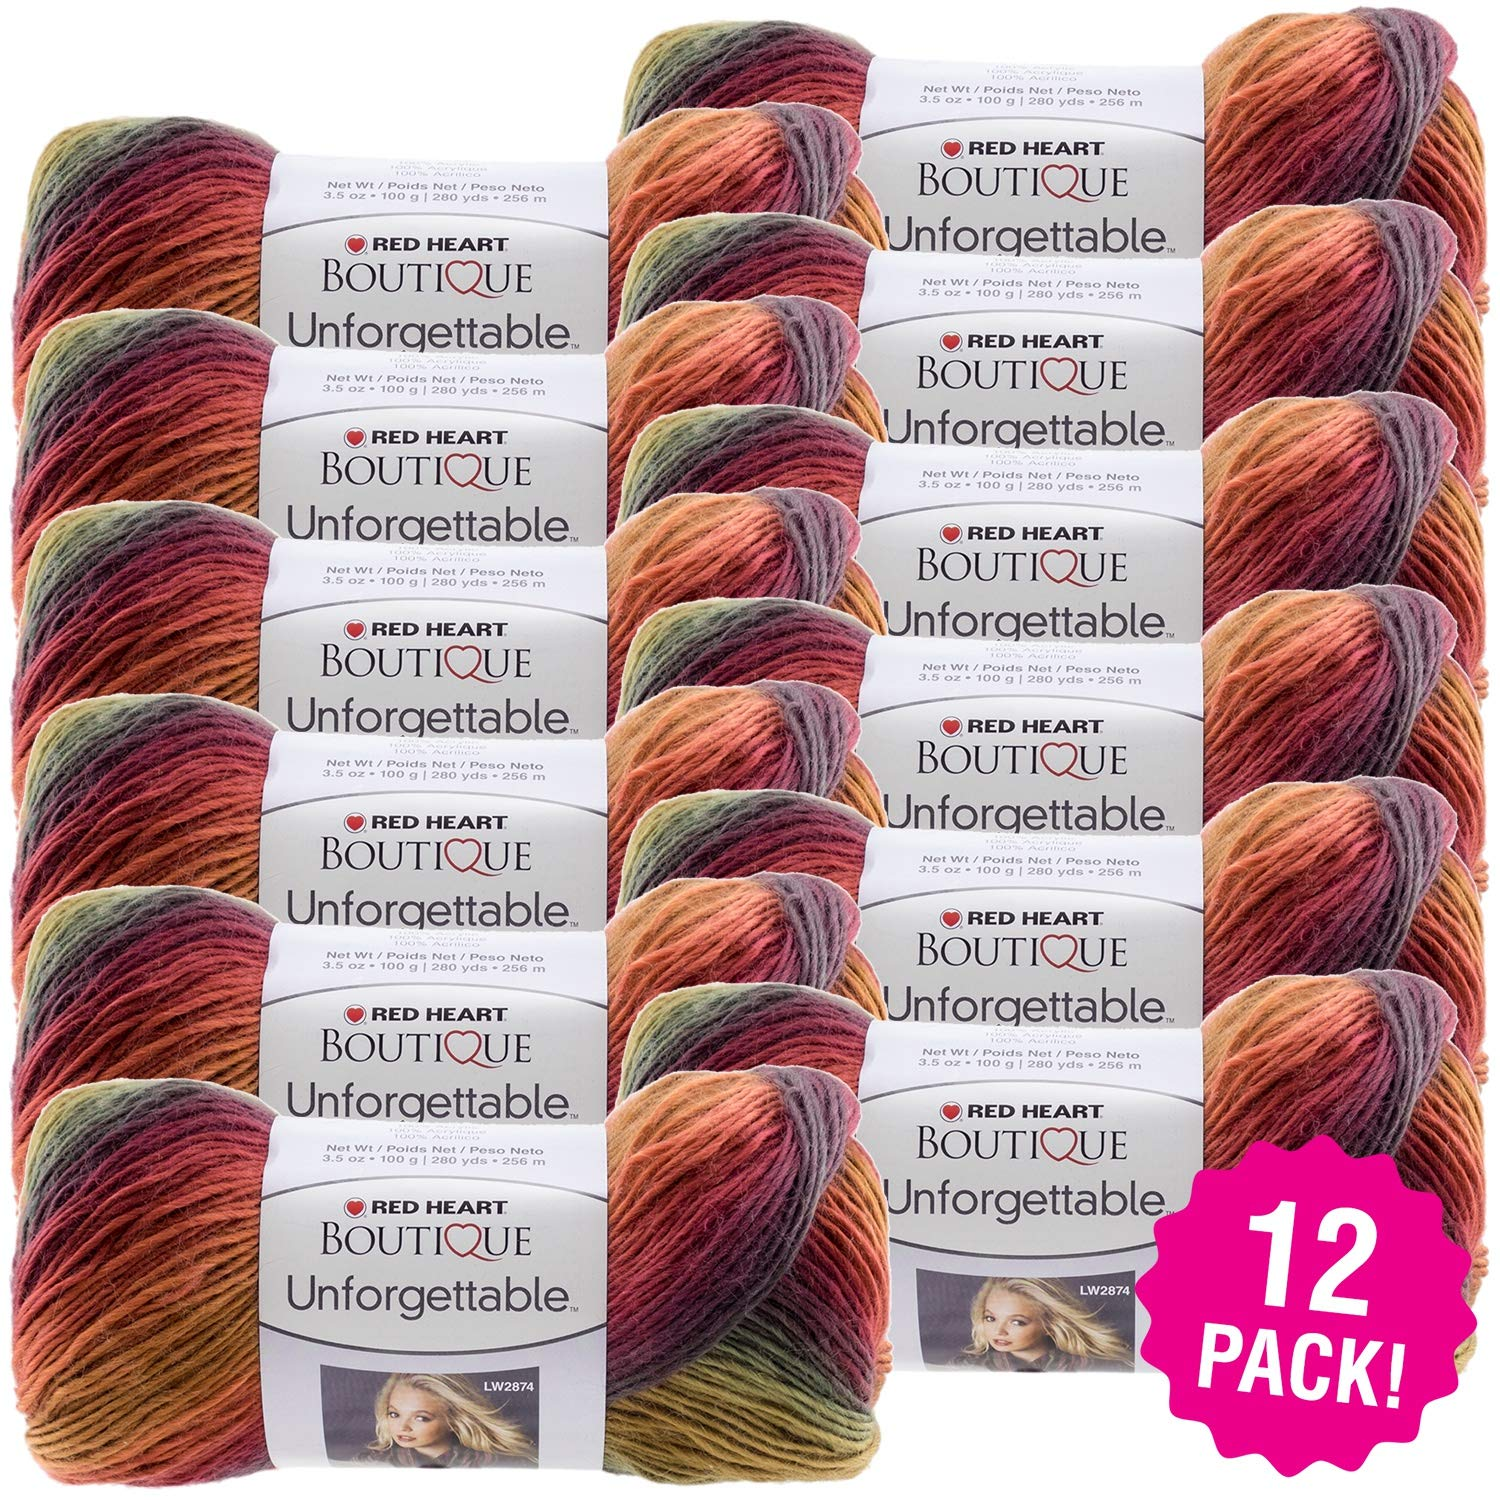 Red Heart 99431 Boutique Unforgettable Yarn 12/Pk-Polo, Pack